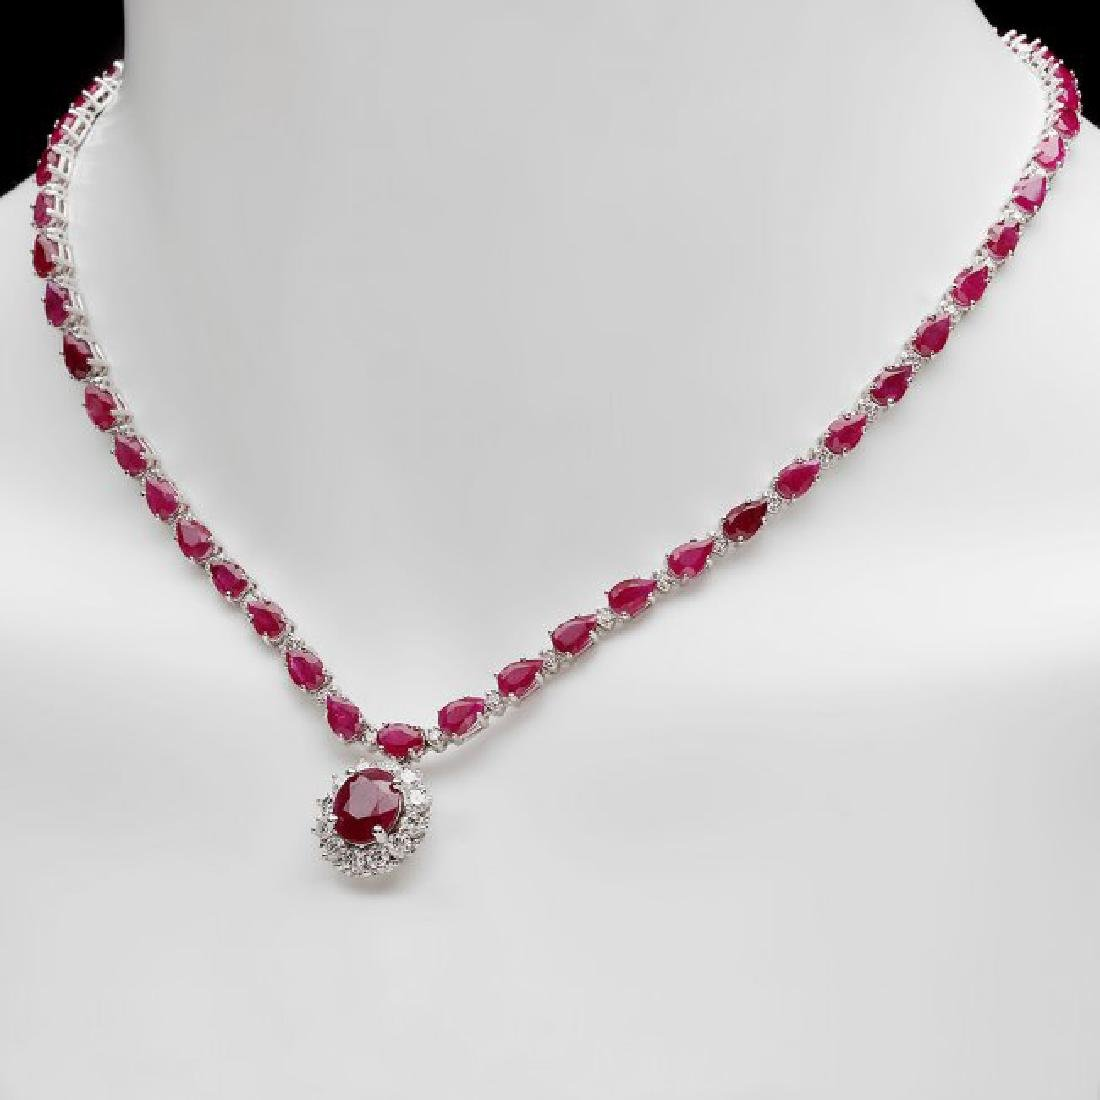 14k White Gold 32ct Ruby 2.50ct Diamond Necklace - 4